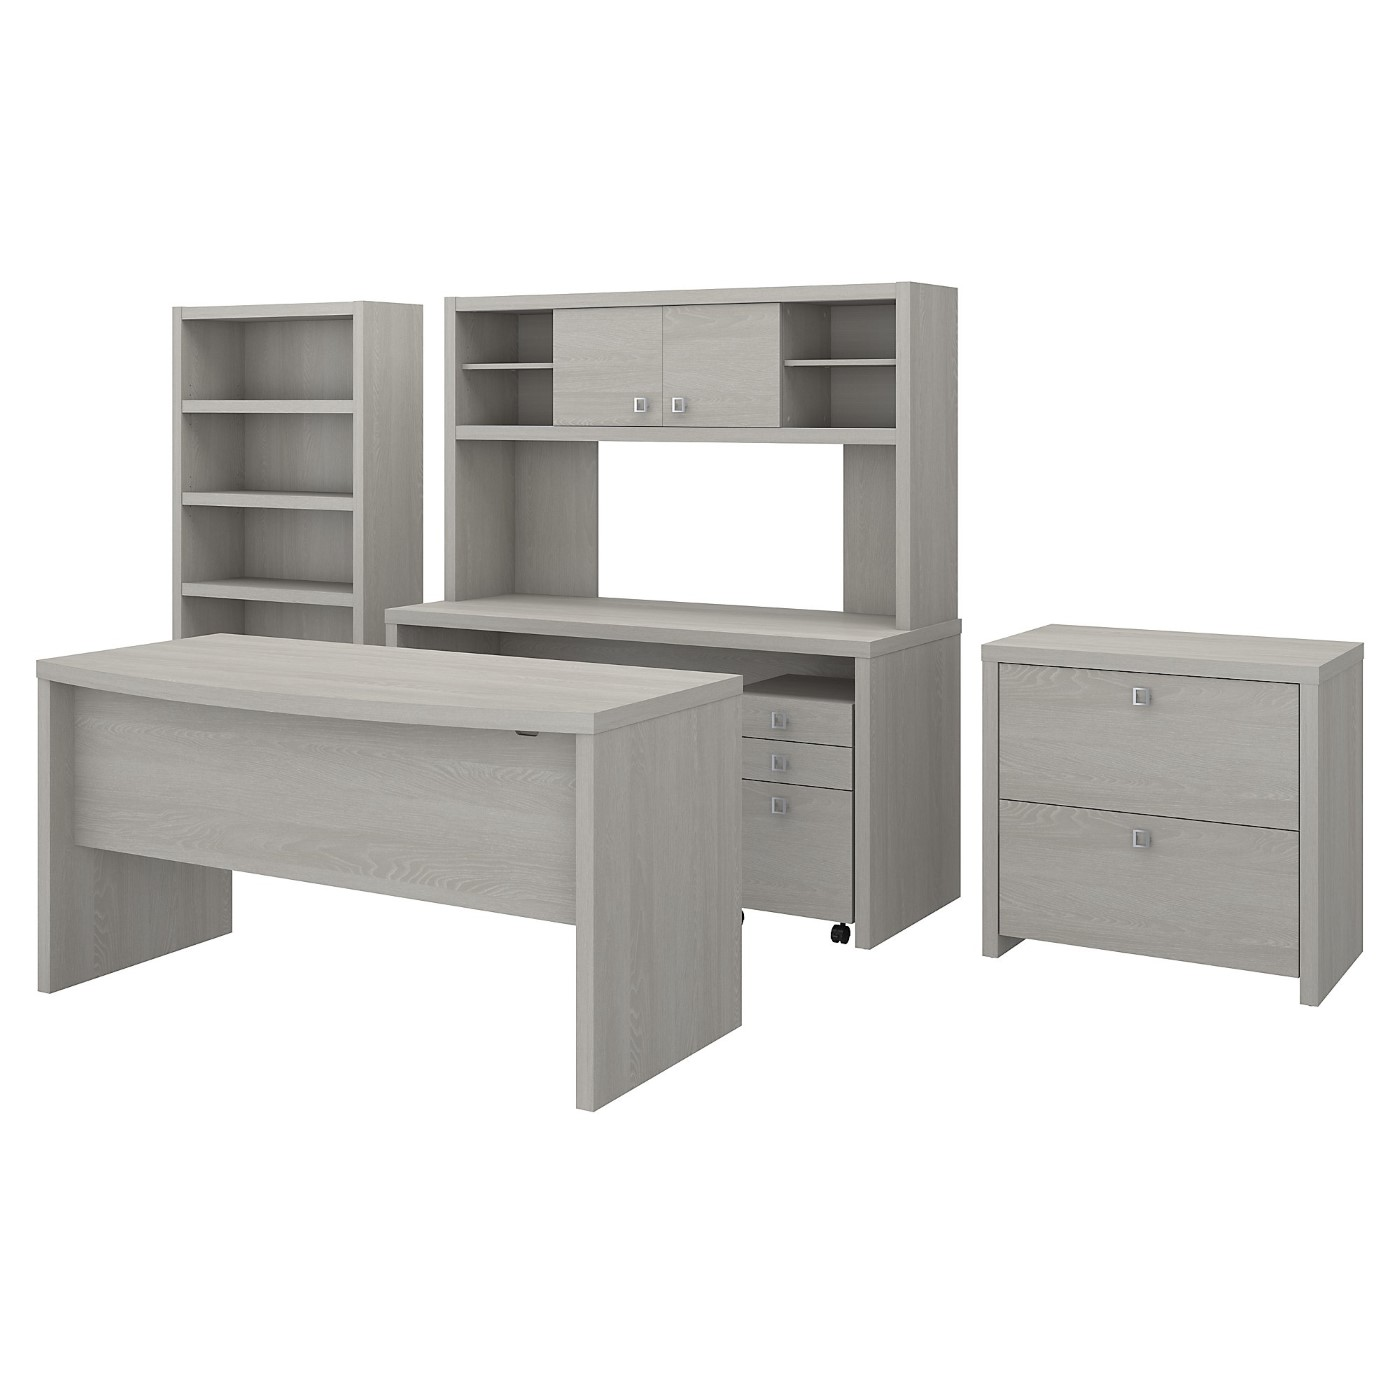 </b></font><b>The kathy ireland� Echo Bow Front Desk, Credenza with Hutch, Bookcase and File Cabinets is Sustainable Eco Friendly Furniture. Includes Free Shipping! 30H x 72L x 72W</b></font>  VIDEO BELOW. <p>RATING:&#11088;&#11088;&#11088;&#11088;&#11088;</b></font></b>